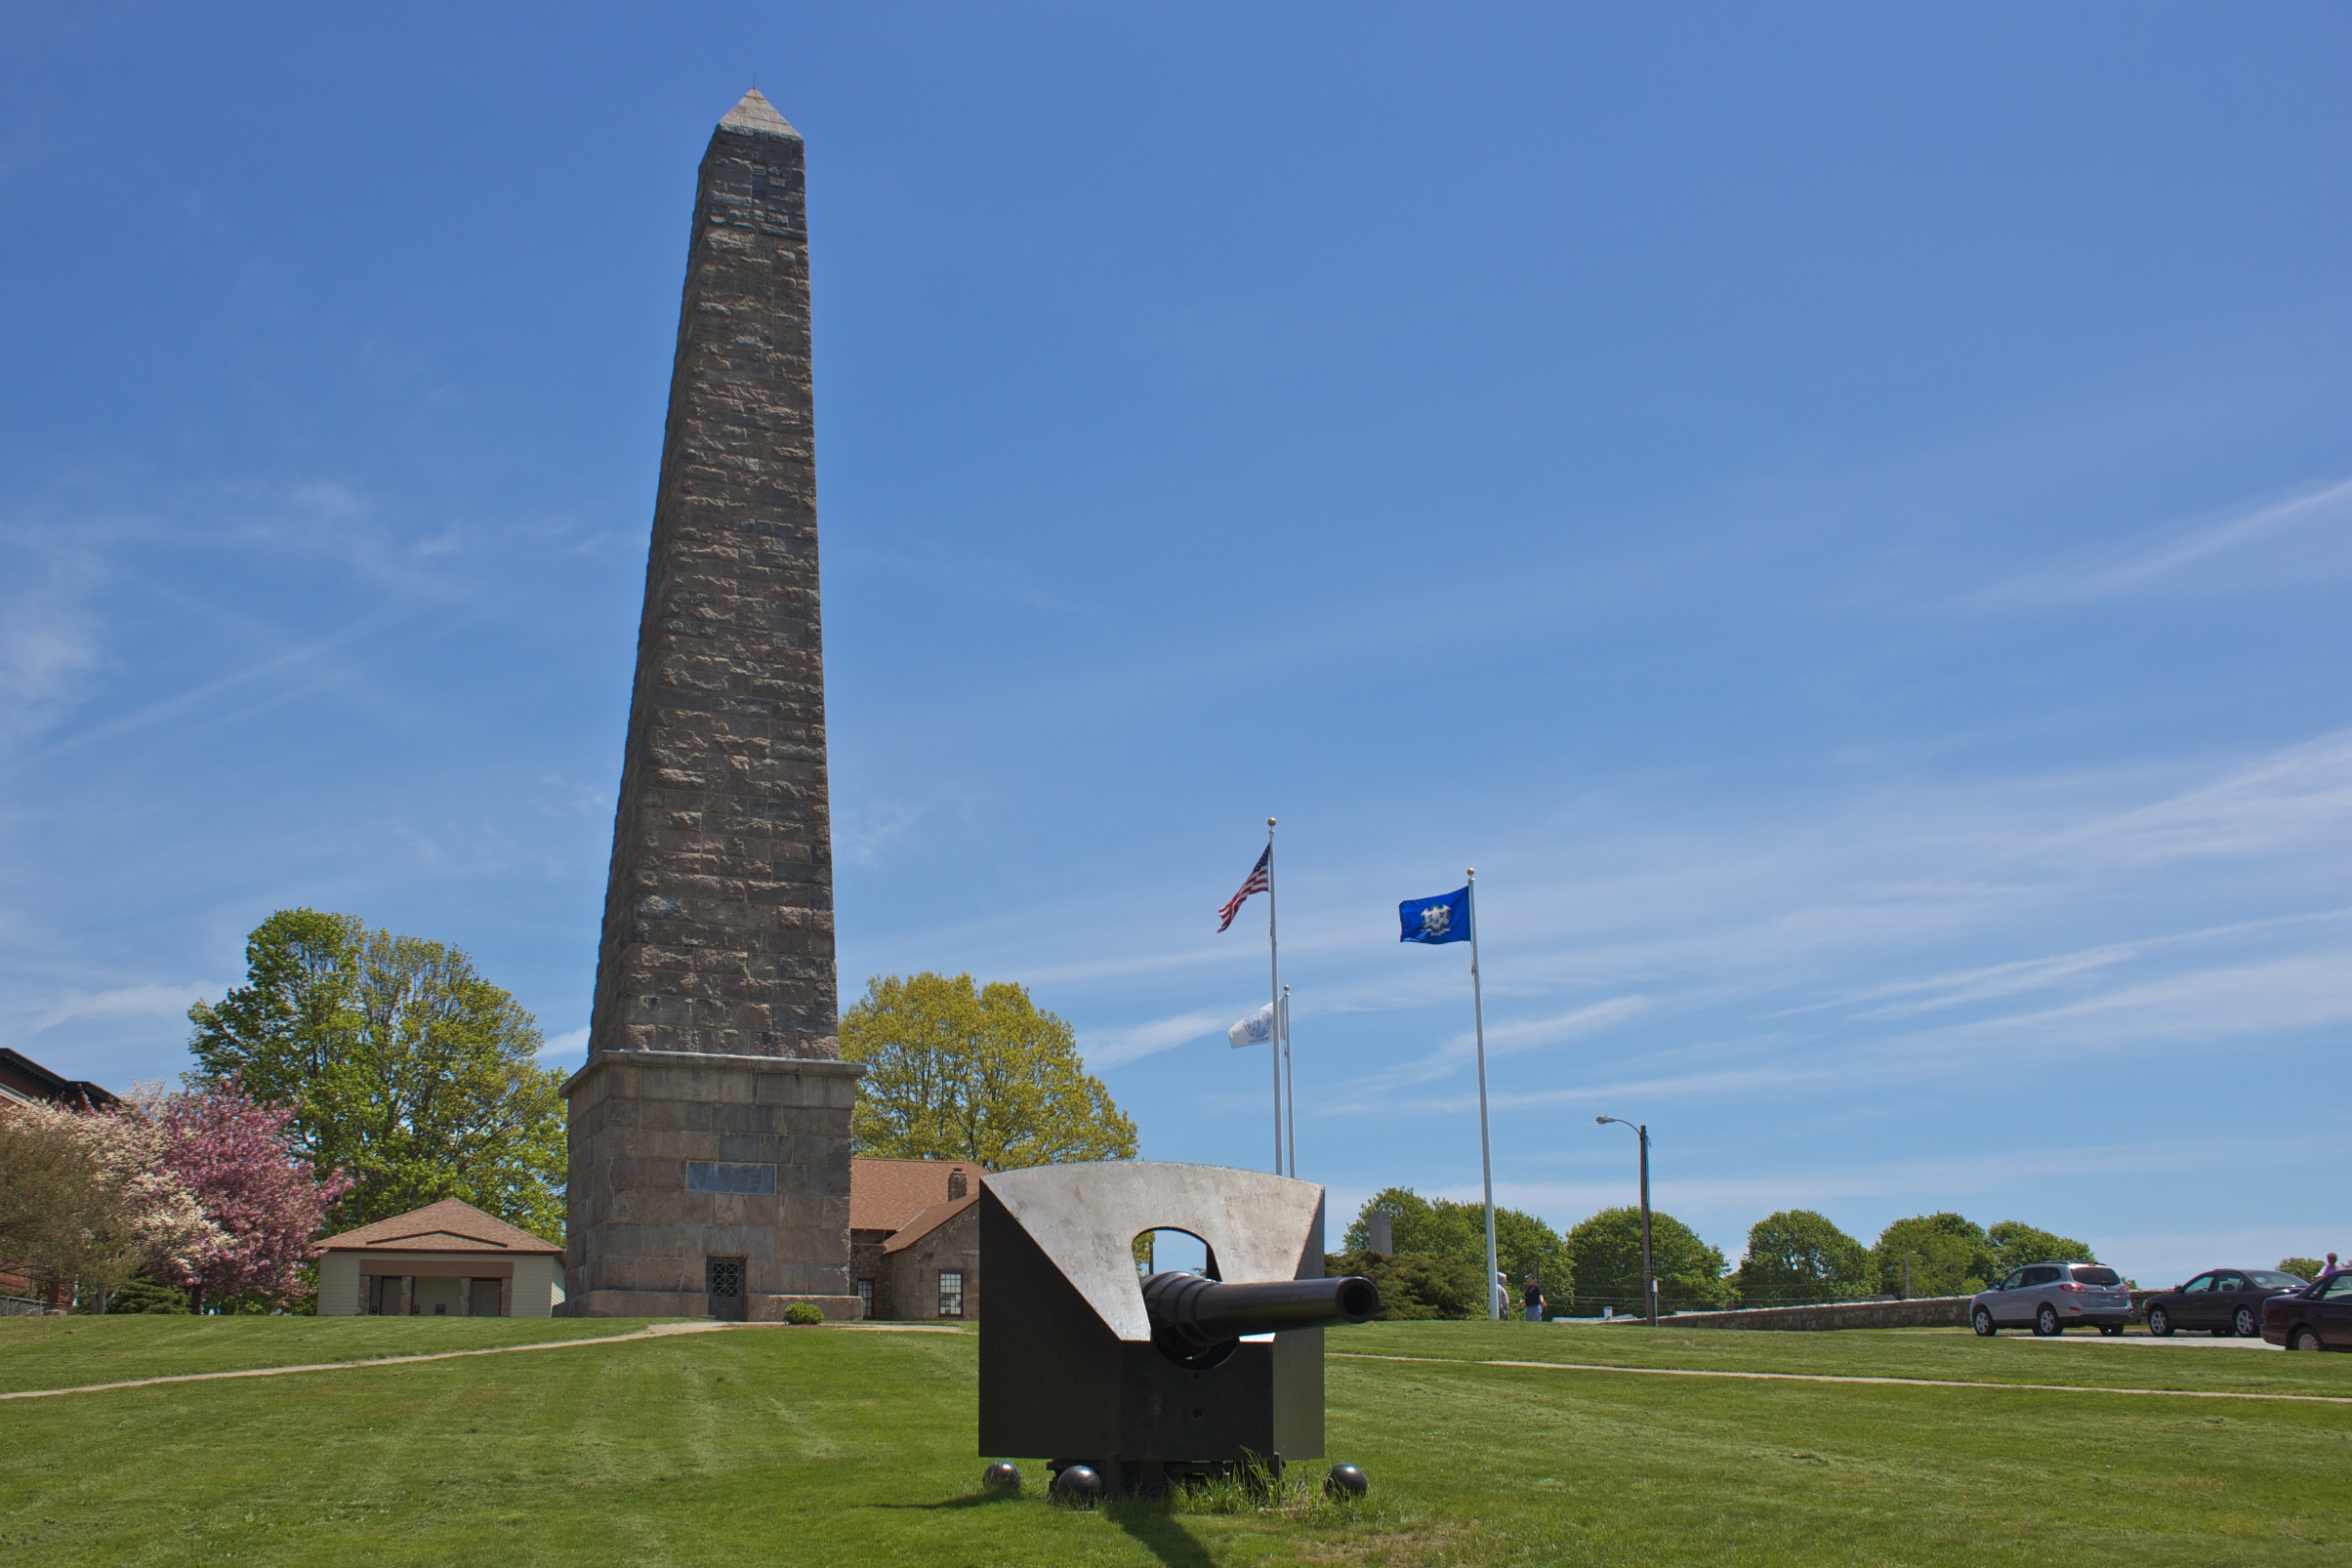 Groton Monument at the park